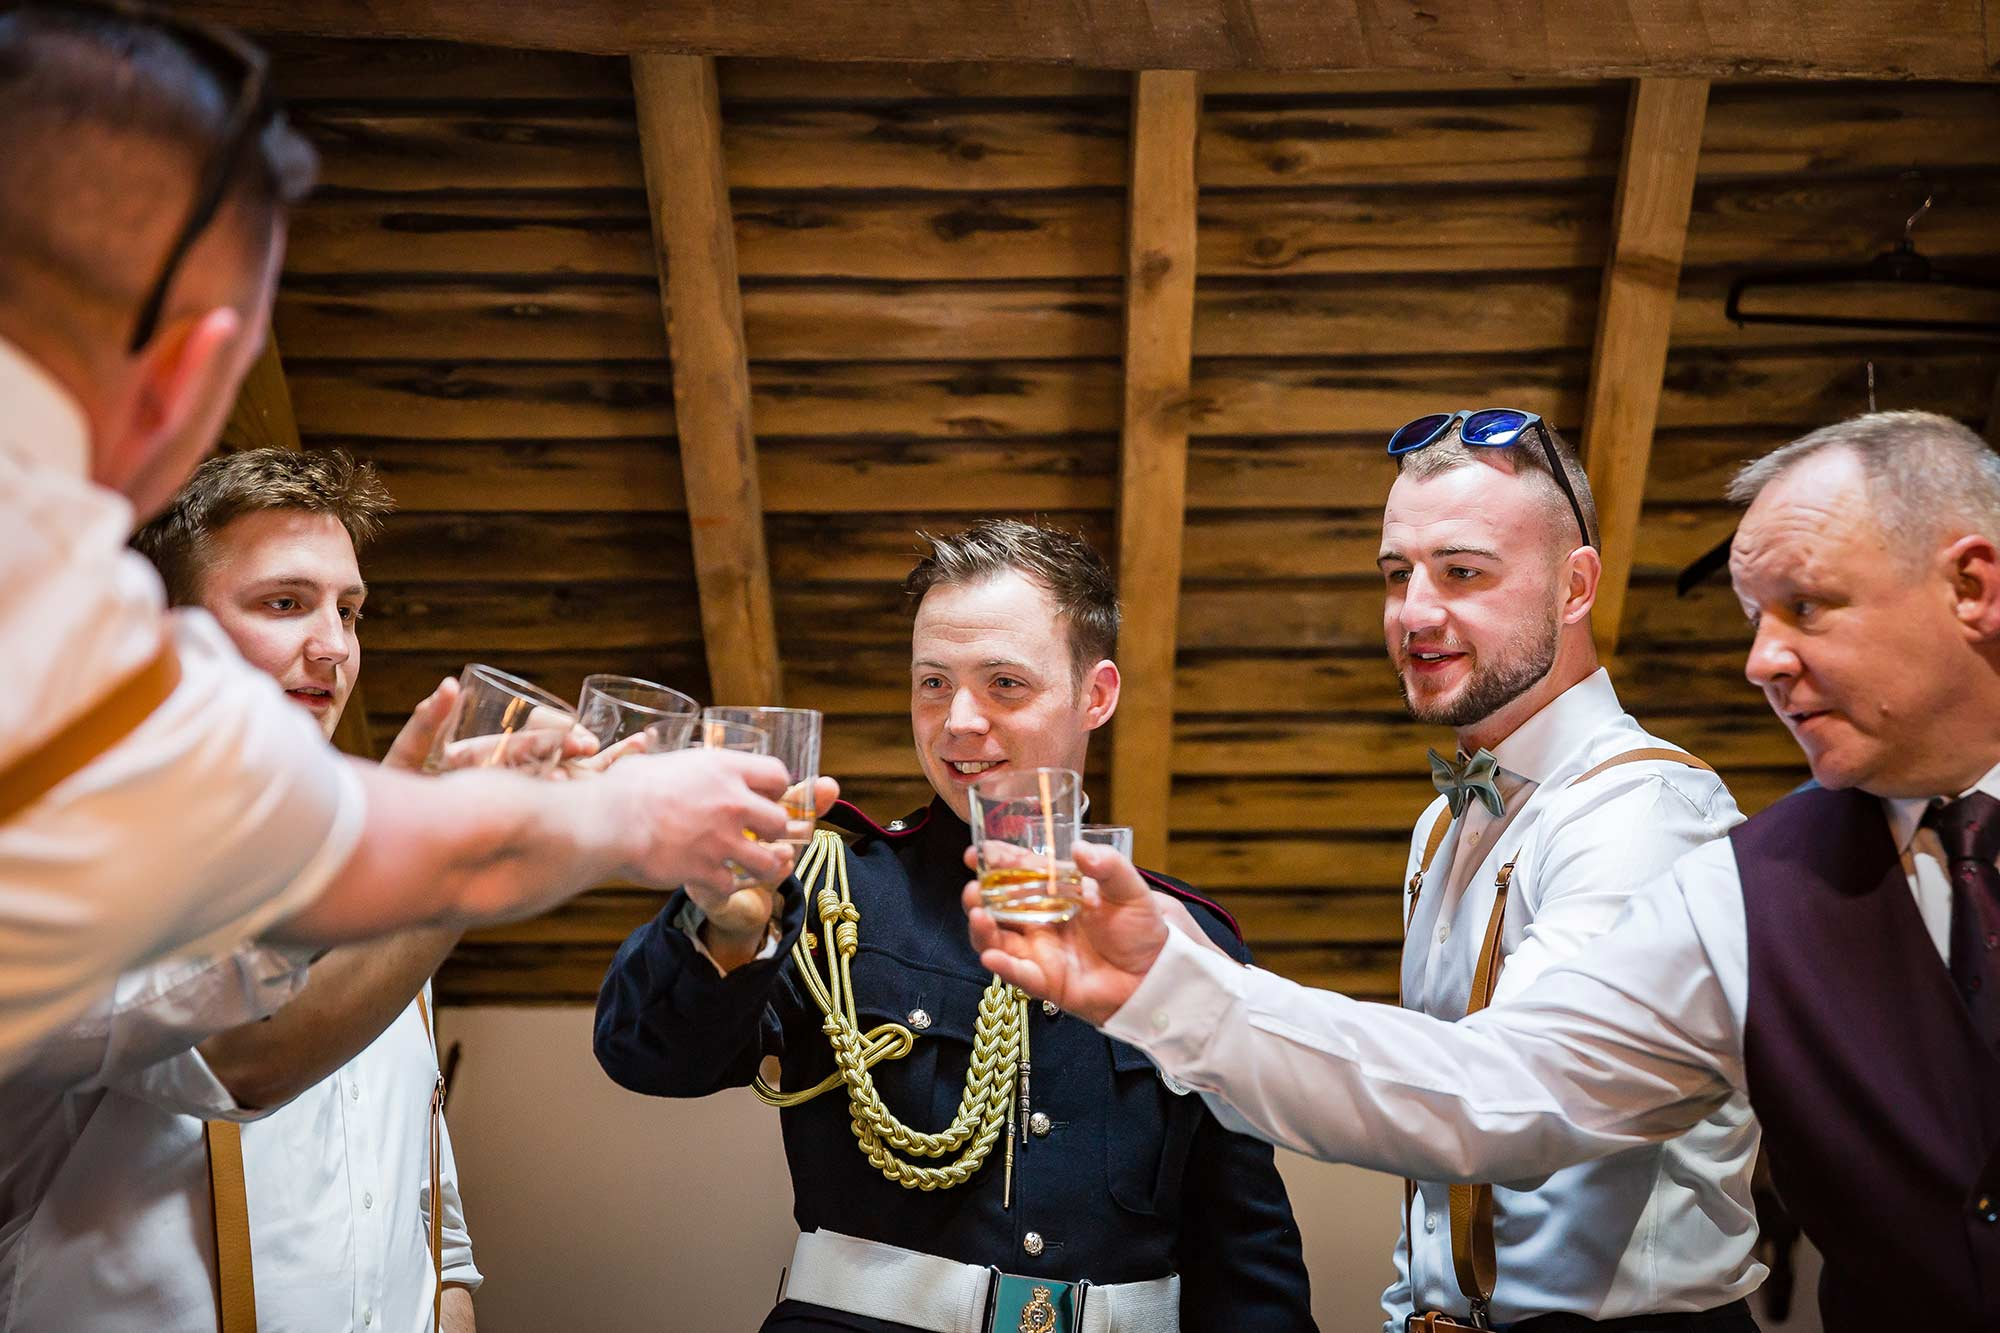 Guys toast a the wedding with whisky